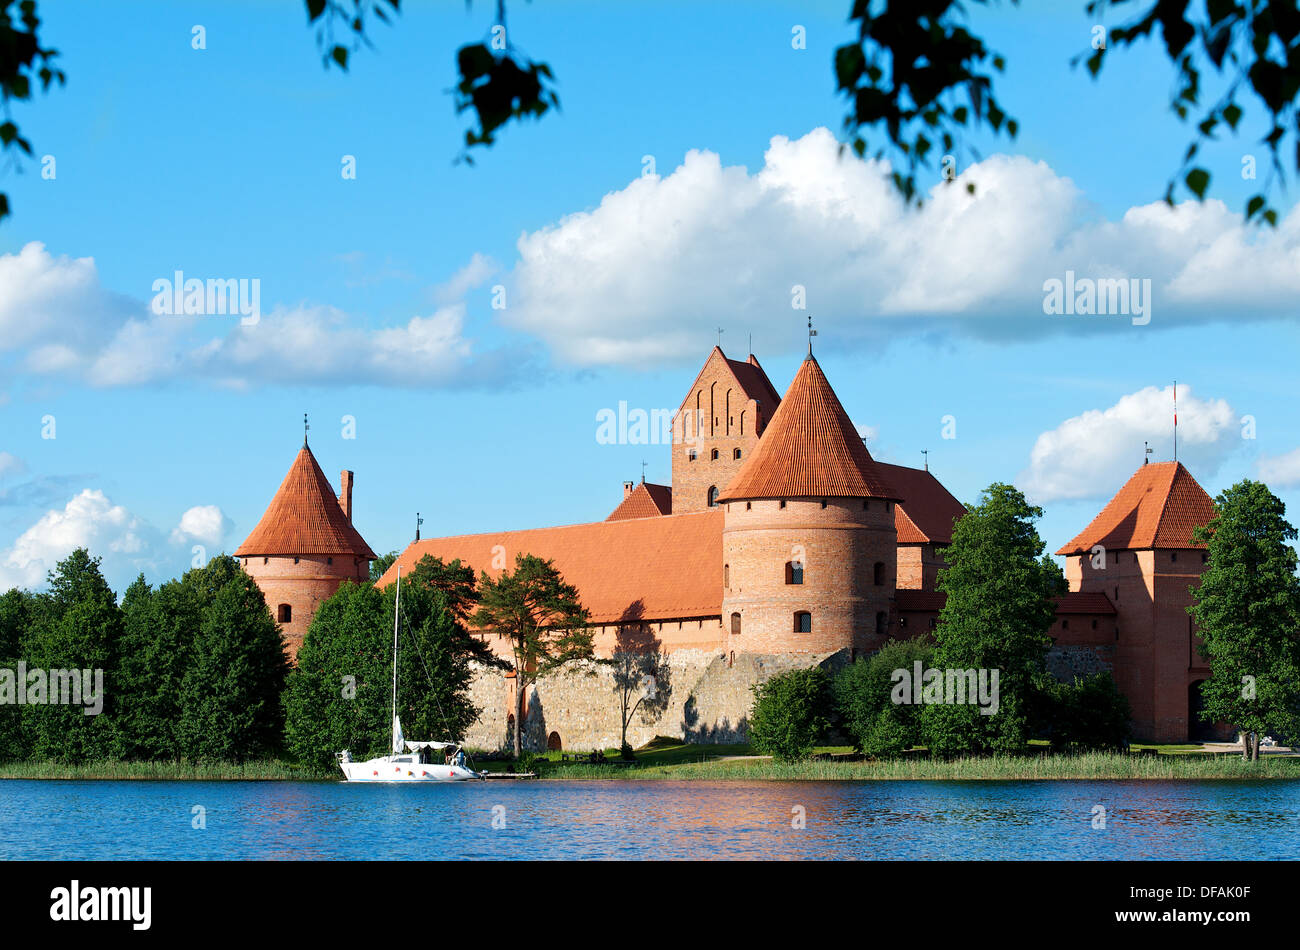 Trakai castle (Traku pilis) in Lithuania, Vilnius, Trakai castle in Lithuania in spring time, Island castle in Trakai - Stock Image